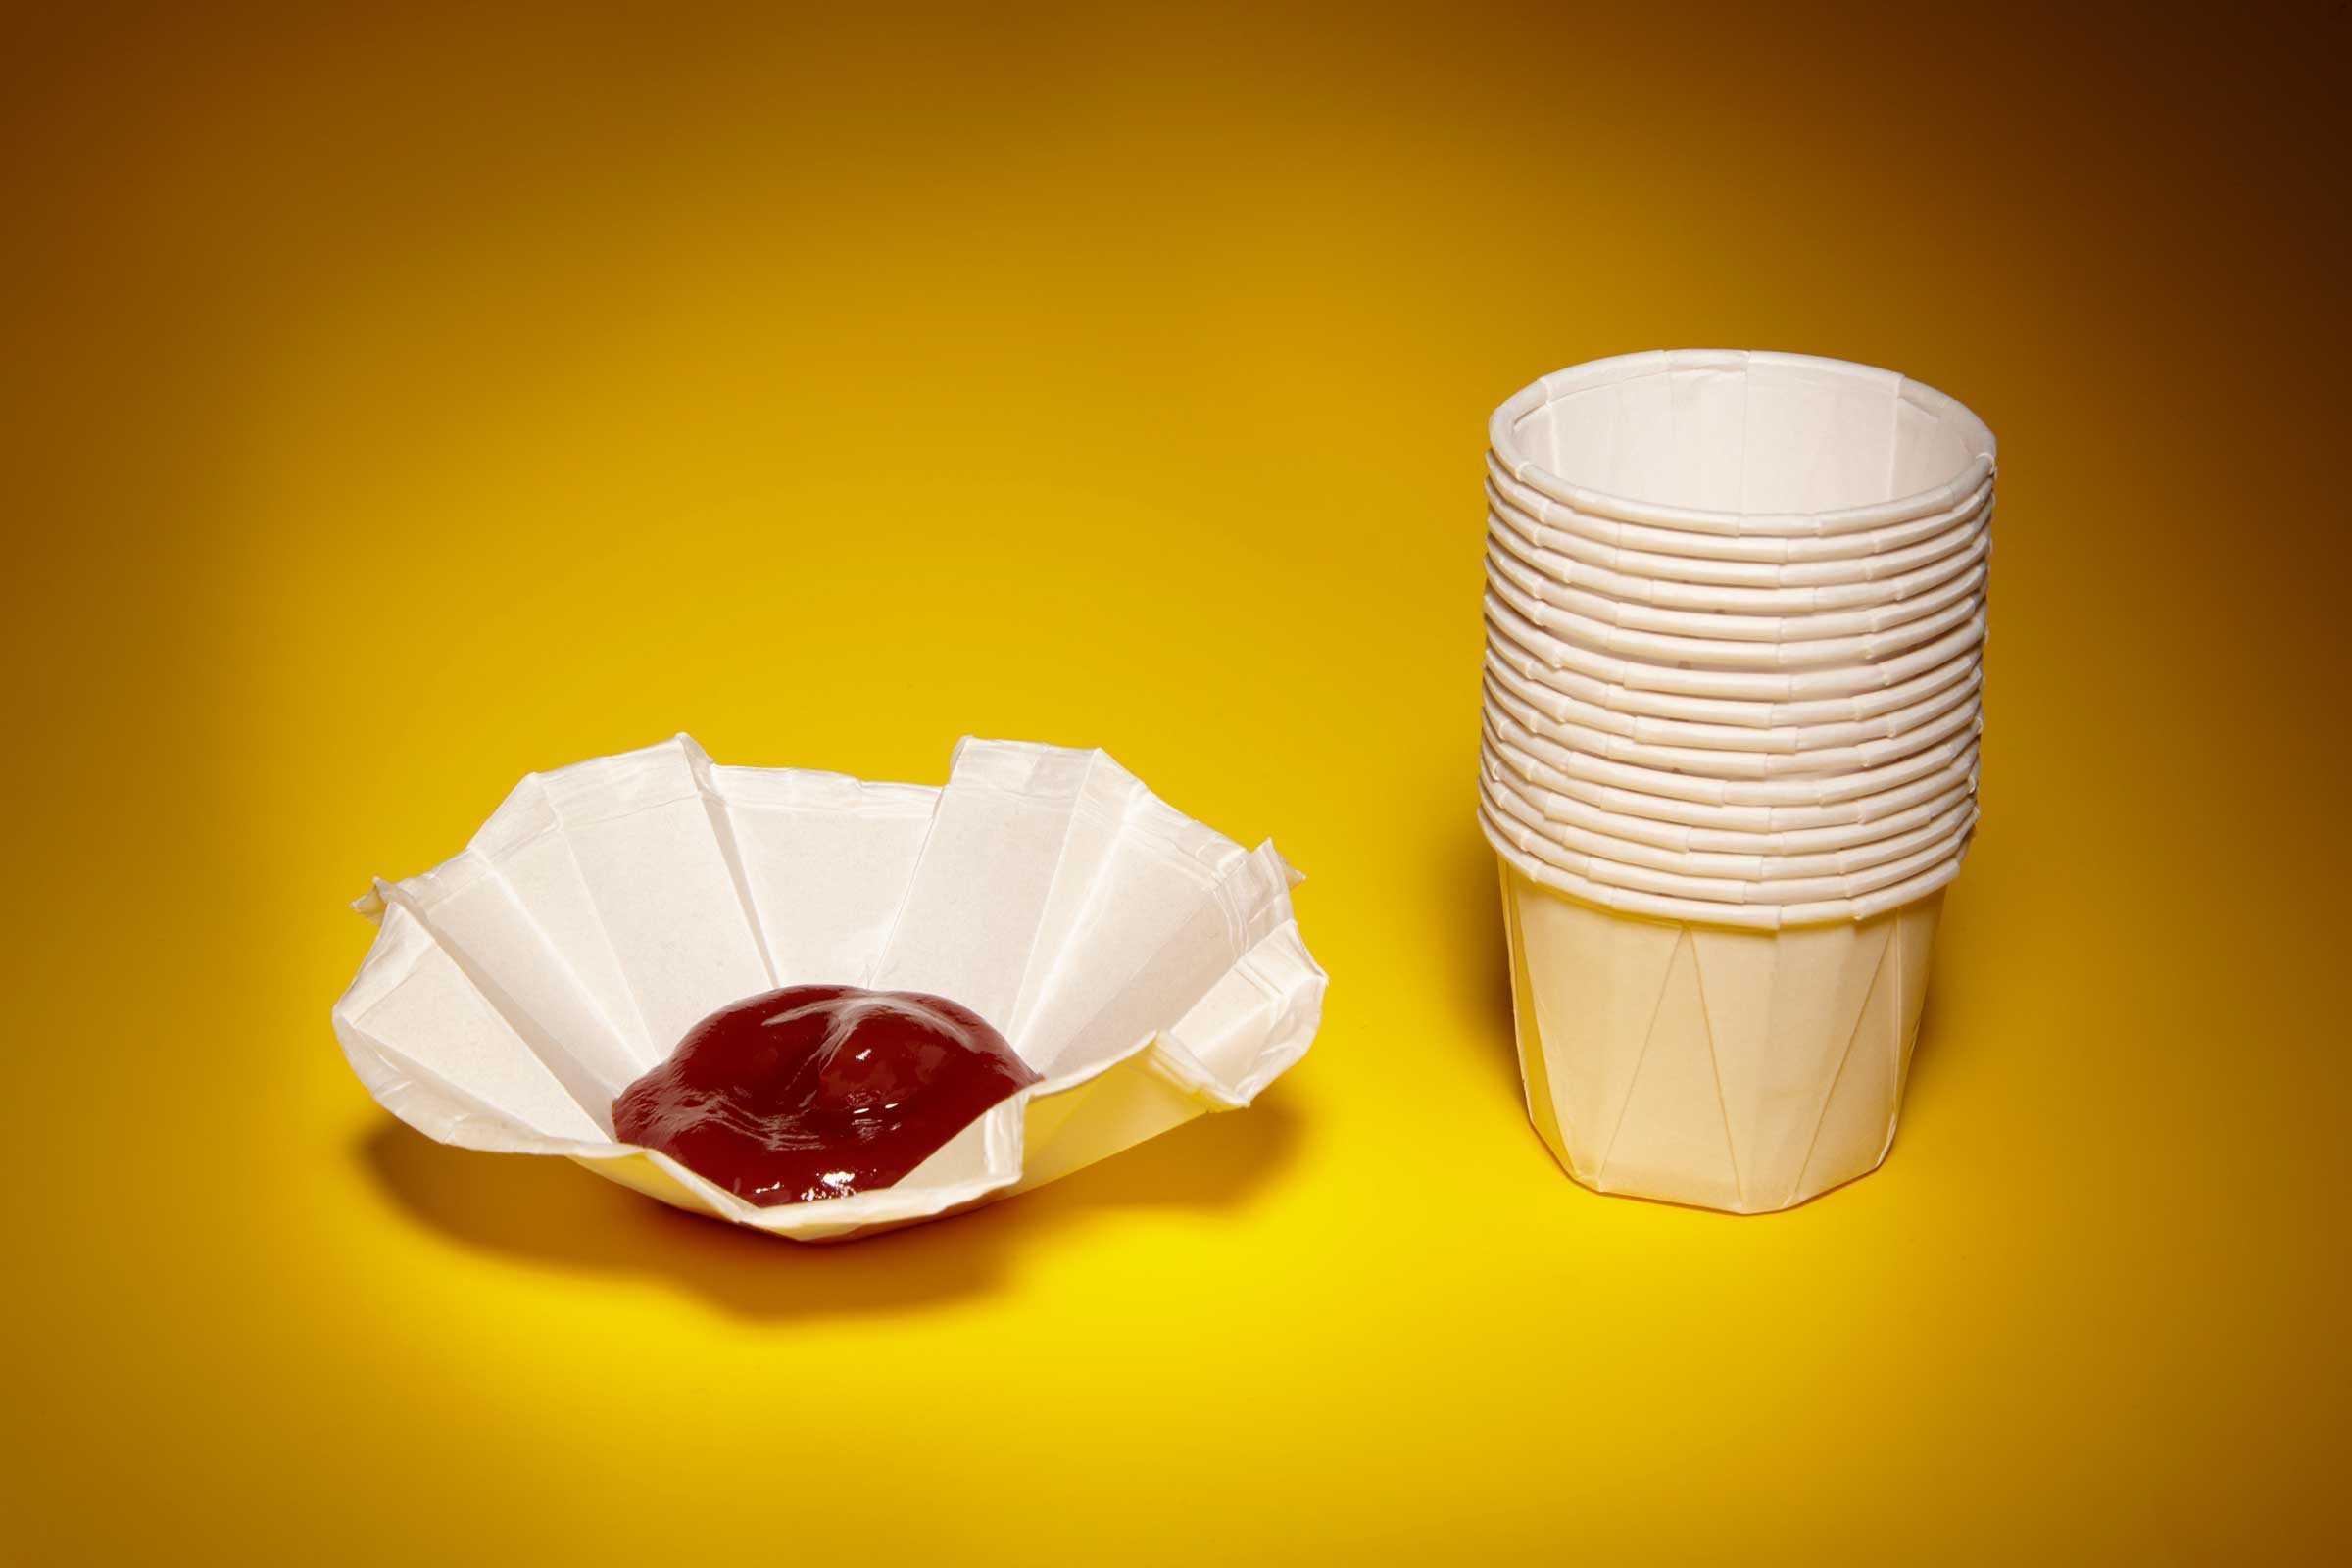 paper food containers Stanpac provides custom food take-out containers and lids in plain, stock, or  custom print to provide our customers distinct, premium take-out products.